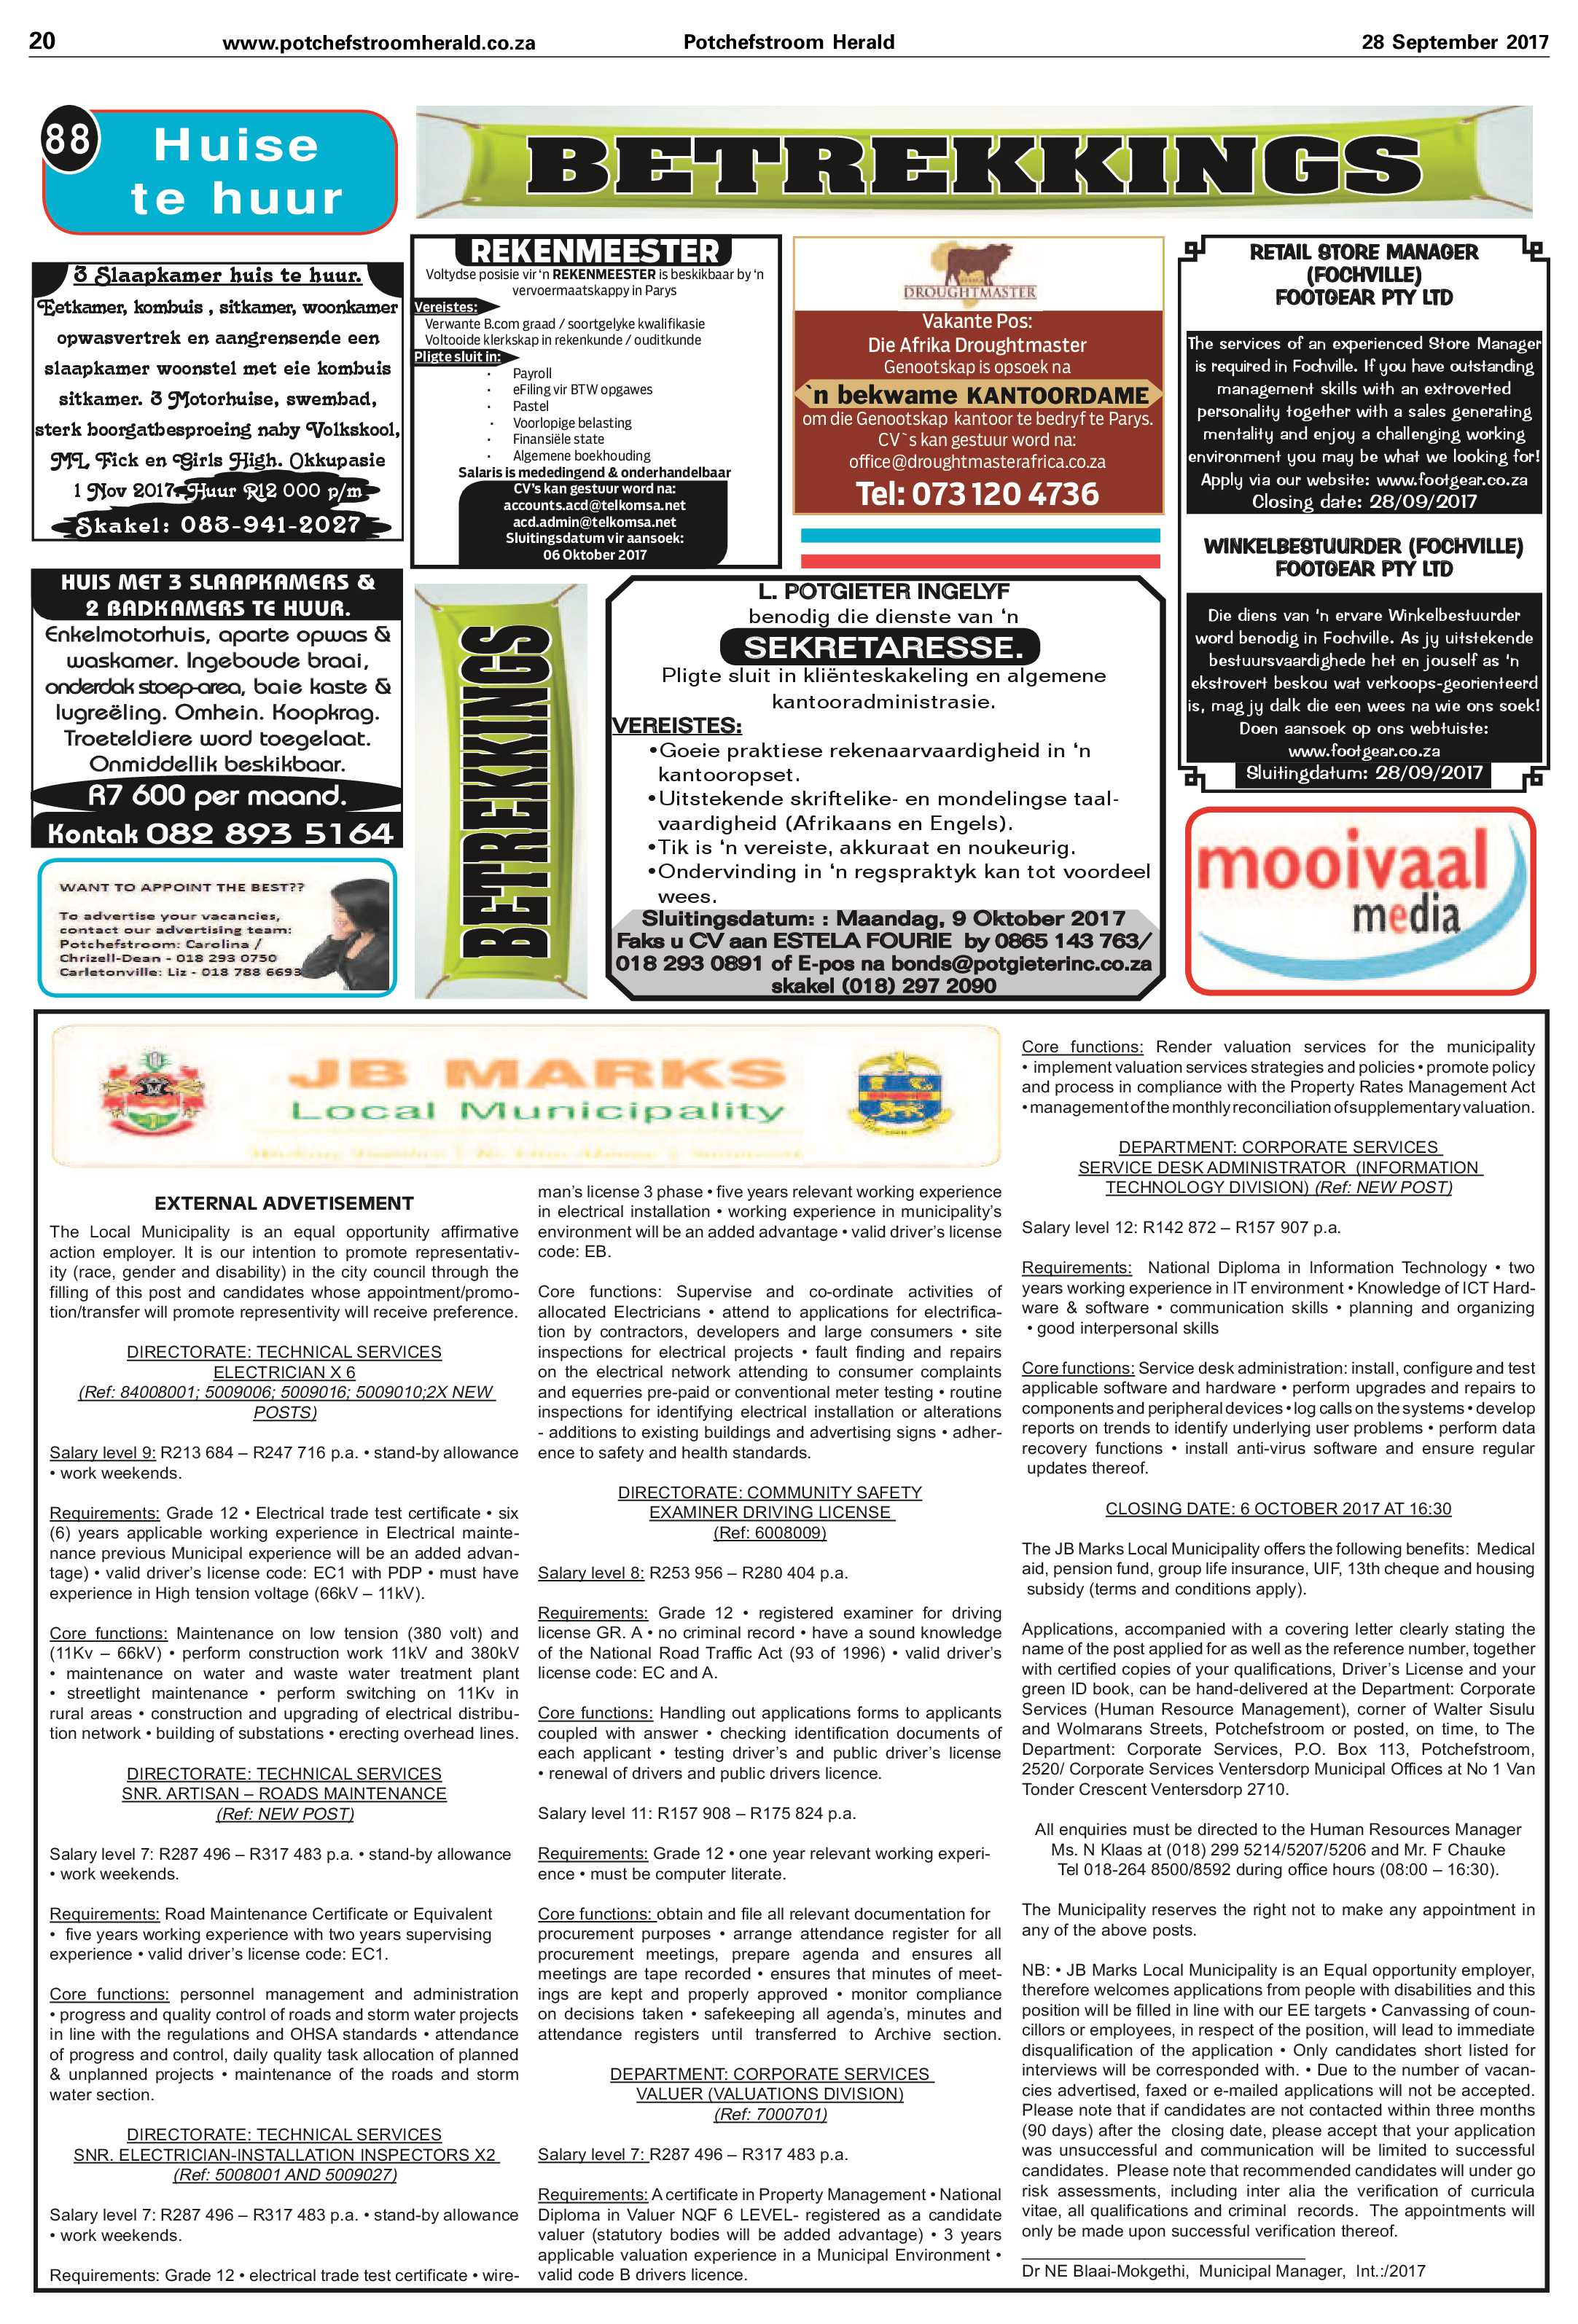 28-september-2017-epapers-page-20